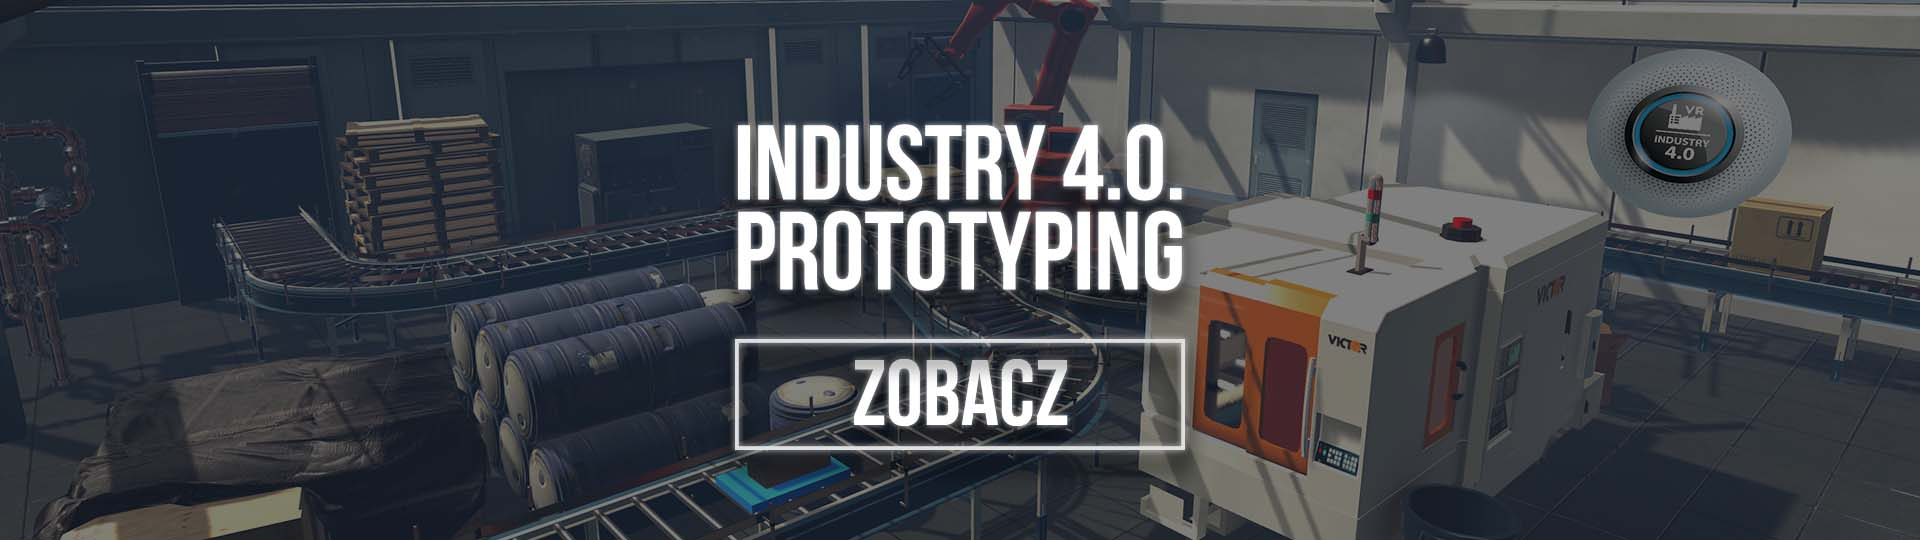 industry 4.0 prototyping in vr